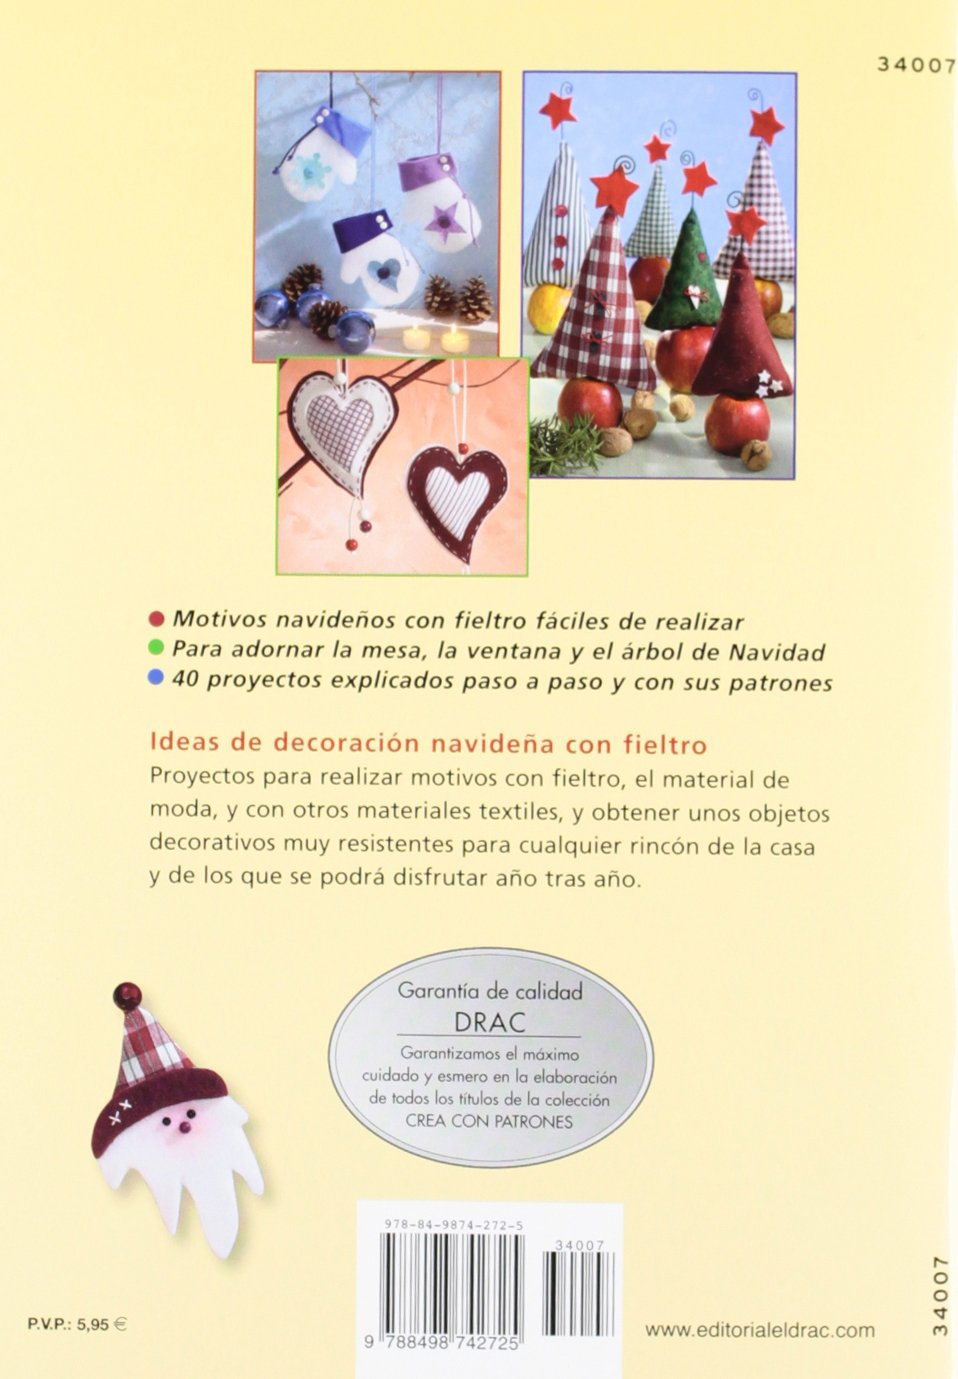 Adornos para decorar la casa en Navidad con fieltro: Martha Steinmeyer: 9788498742725: Amazon.com: Books